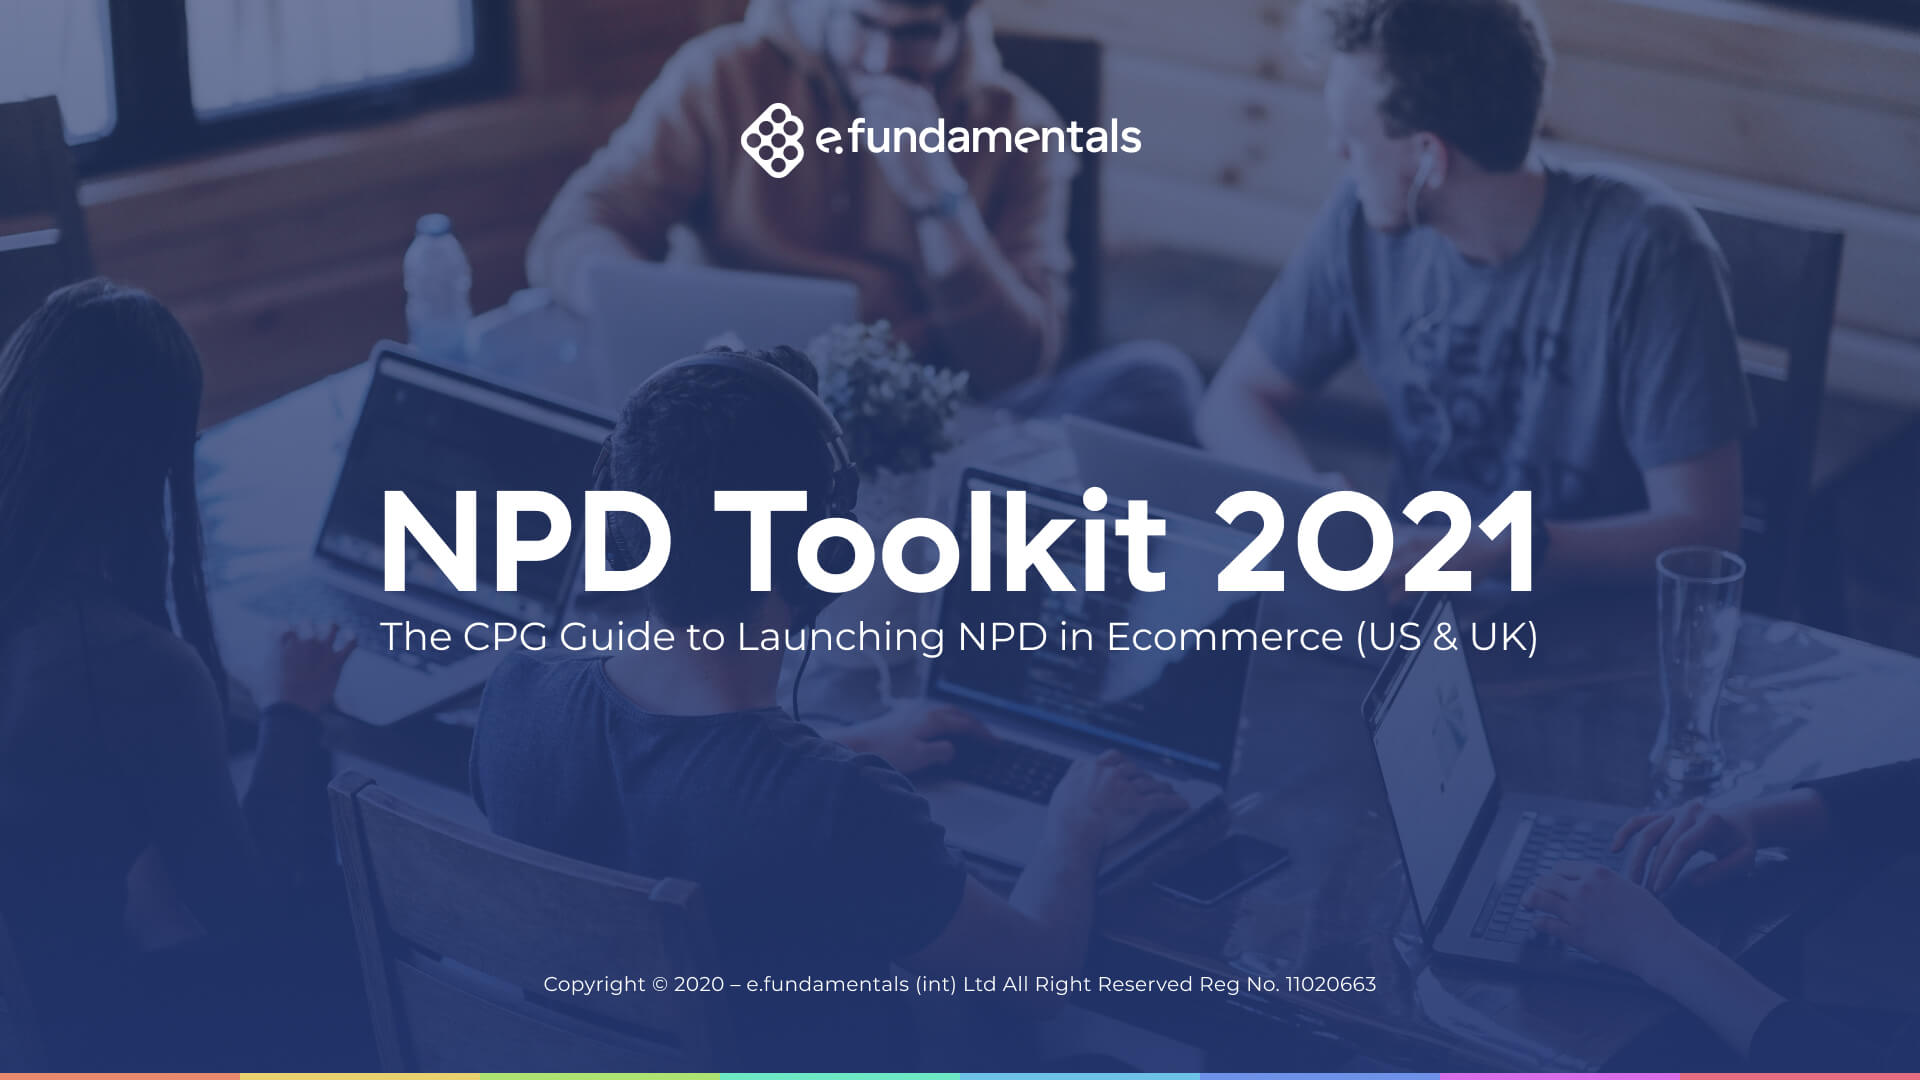 NPD Toolkit 2021 - Strategise for effeective ecommerce NPD launch